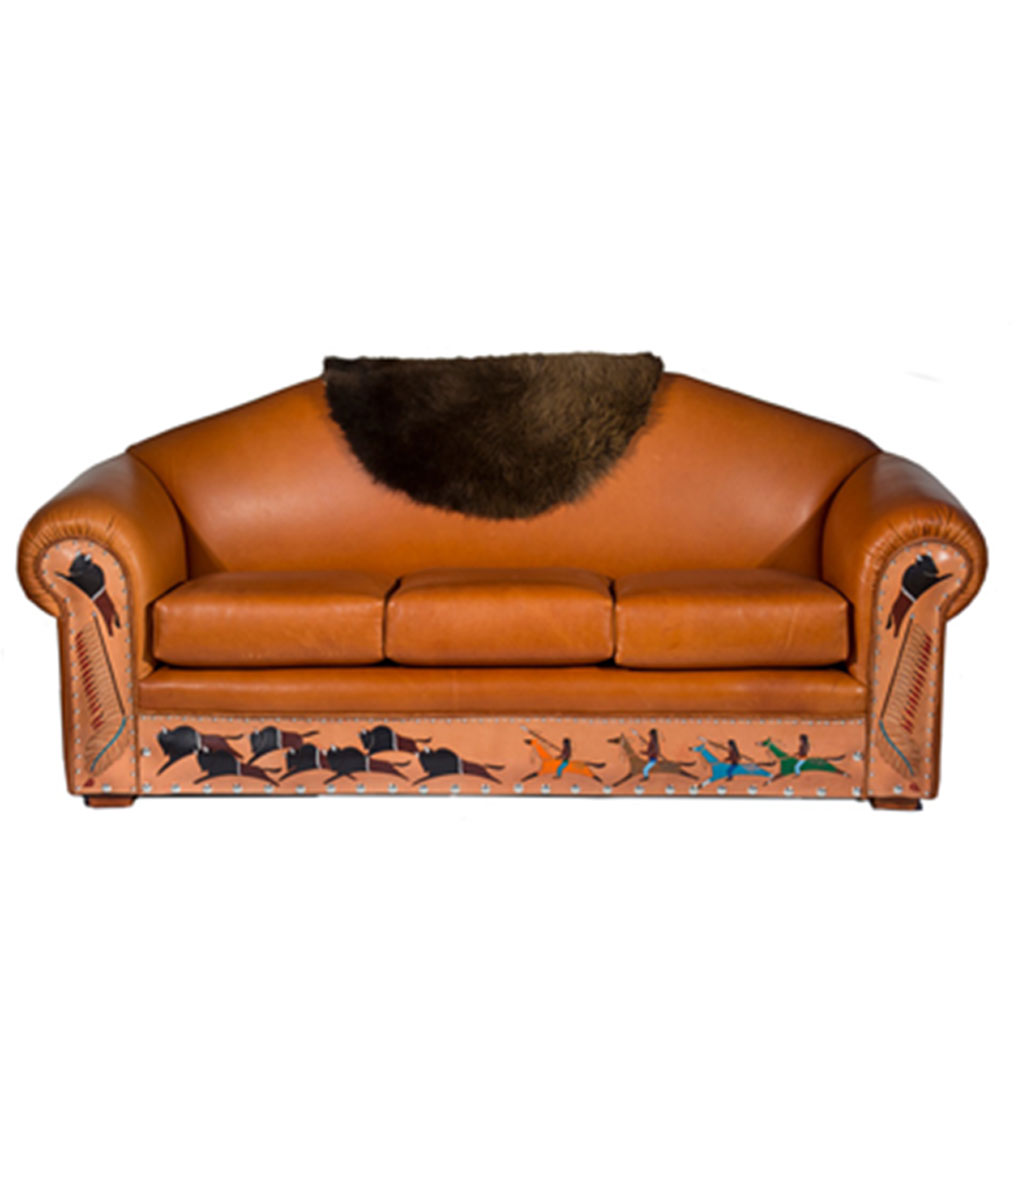 Hand painted depictions of a Native American hunting scene on Customizable Leather Sofa | Western furniture and decor from RusticArtistry.com